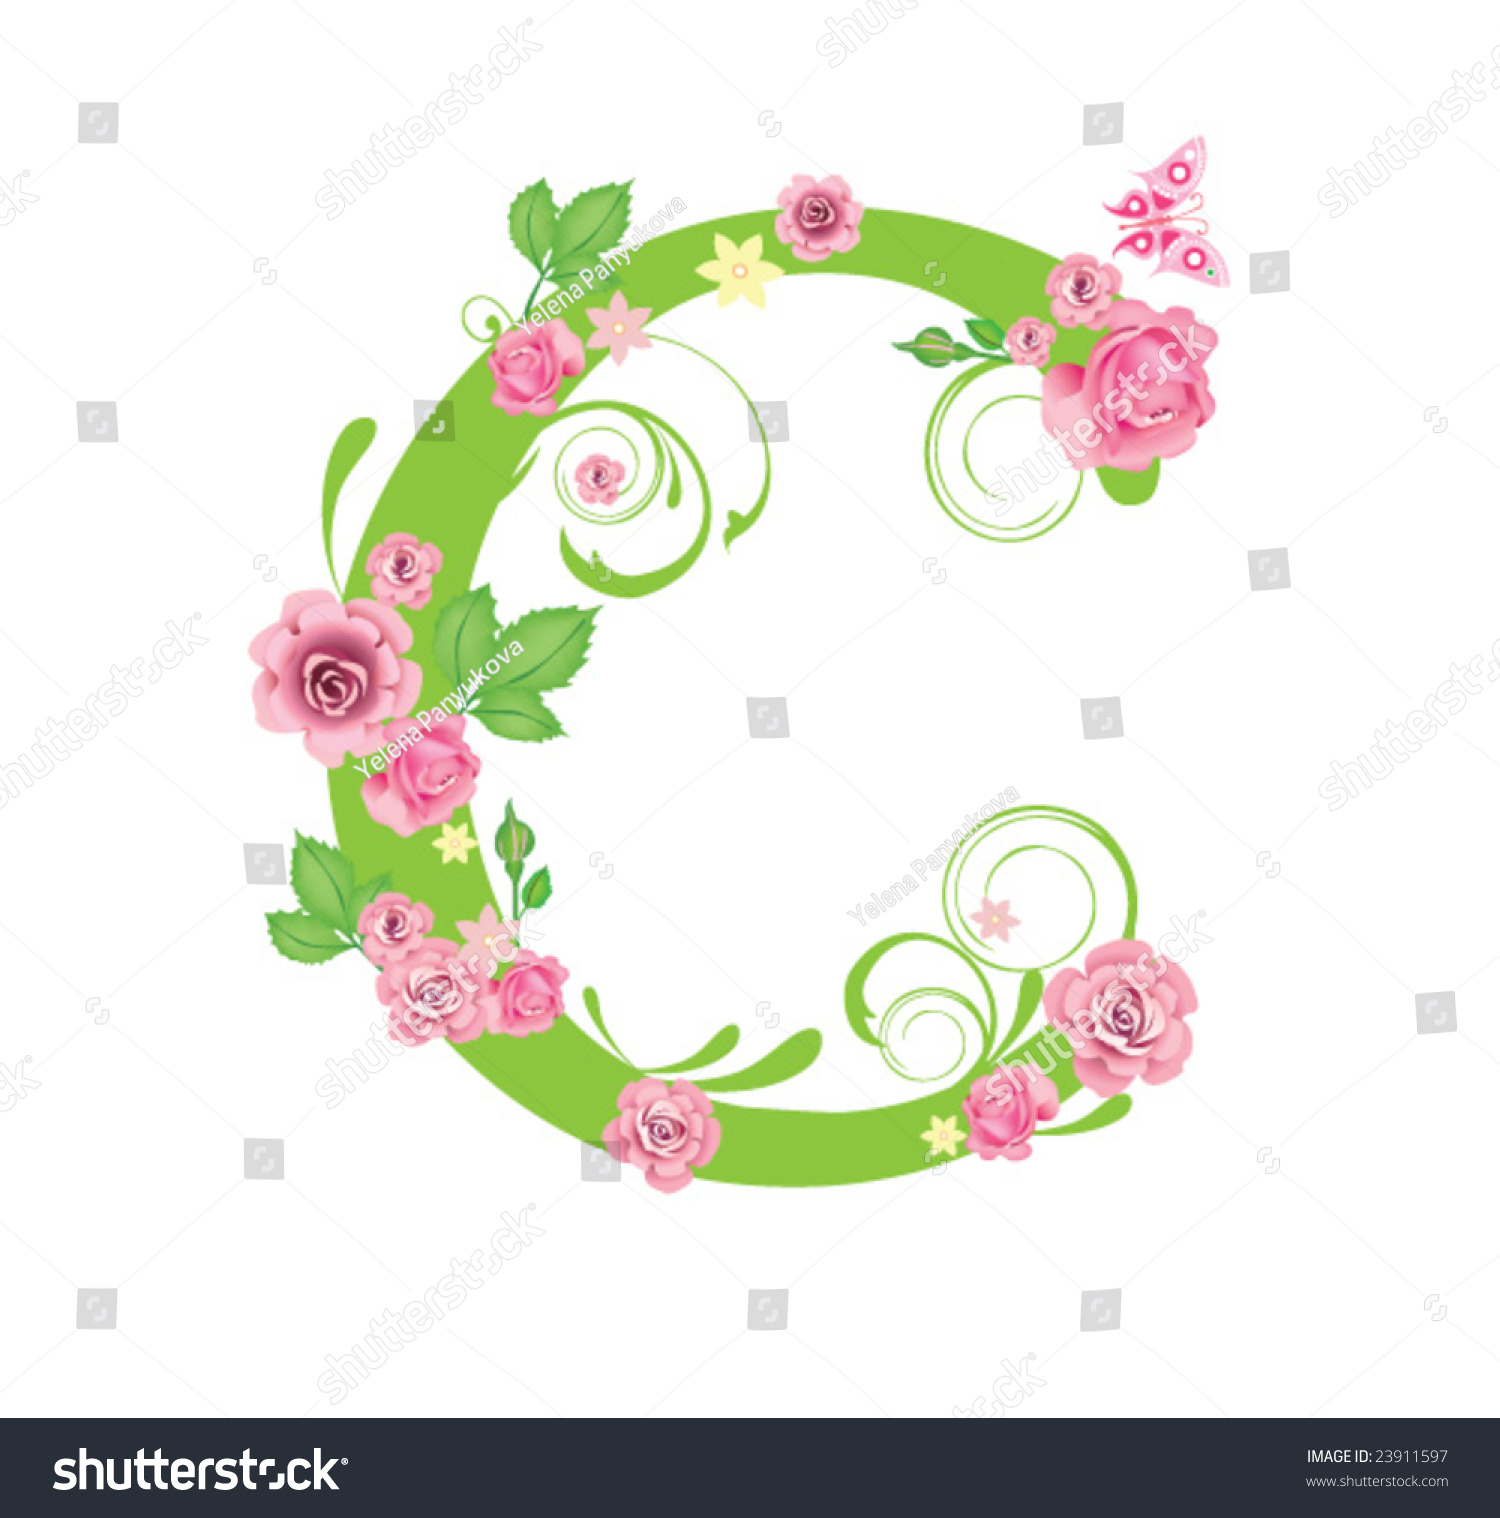 letter c roses design stock vector 23911597 shutterstock. Black Bedroom Furniture Sets. Home Design Ideas